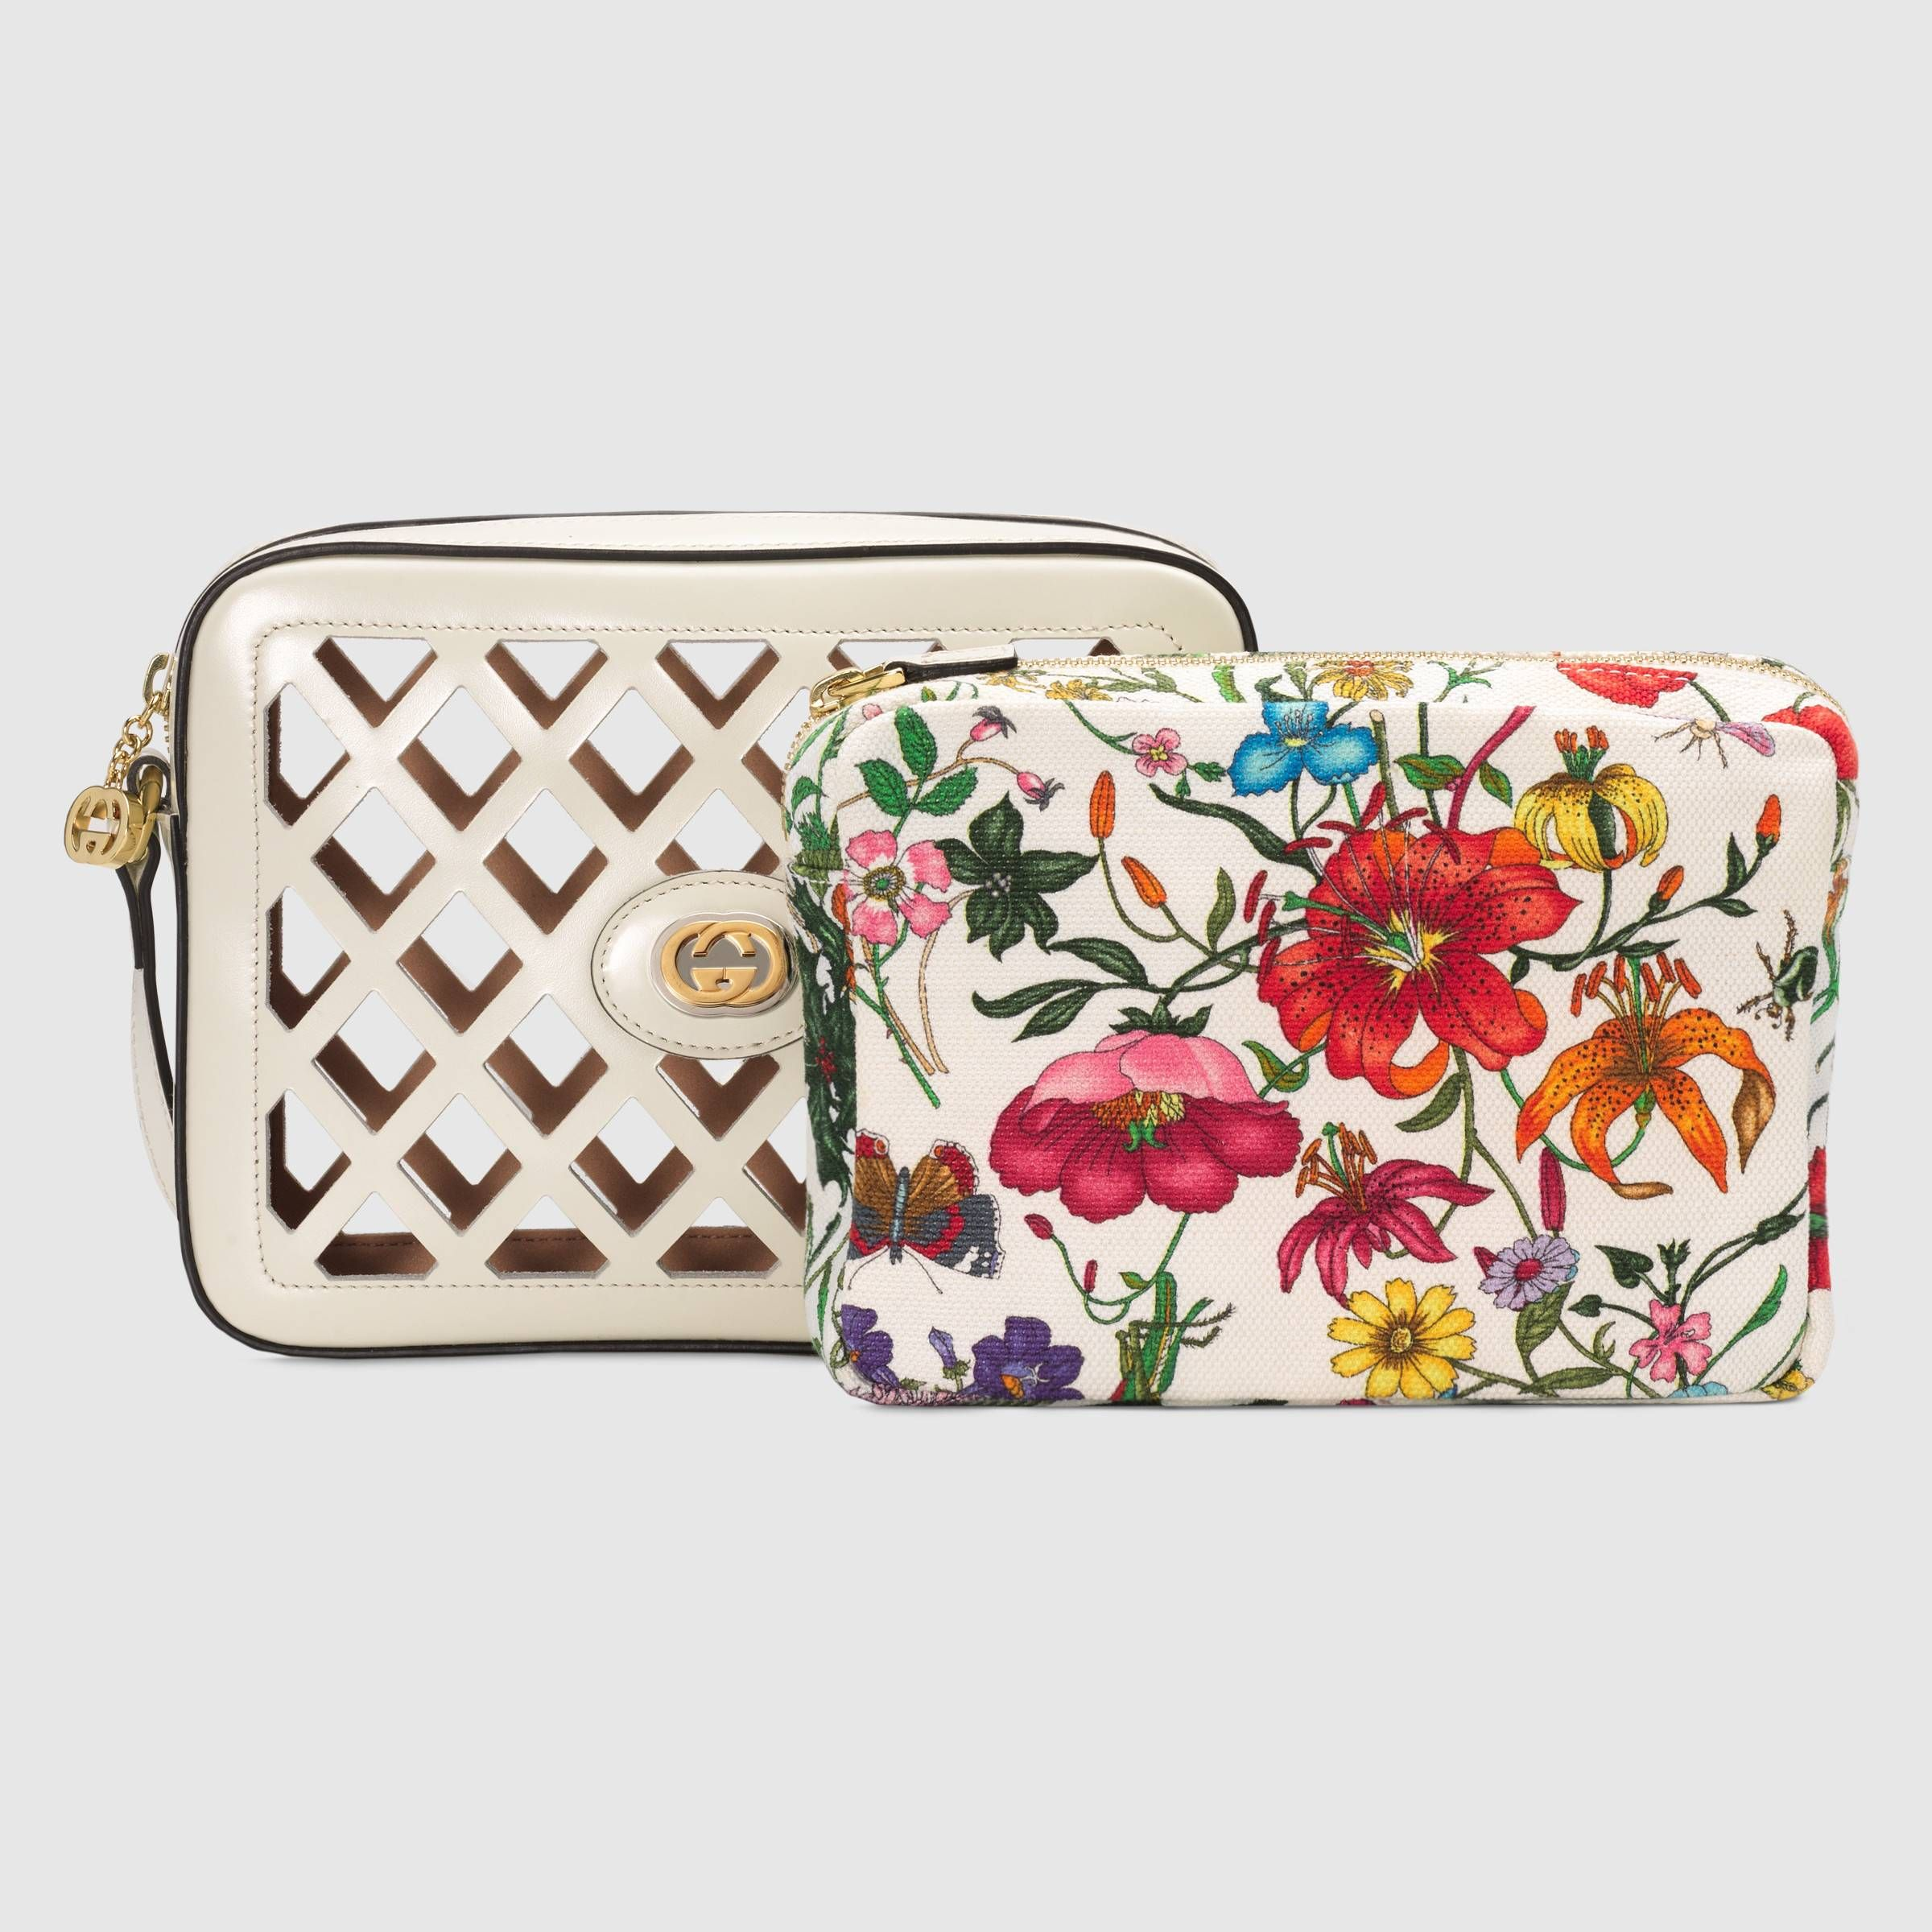 a3f74a2ecafd Small cutout leather shoulder bag in White cutout leather | Gucci Women's  Crossbody Bags